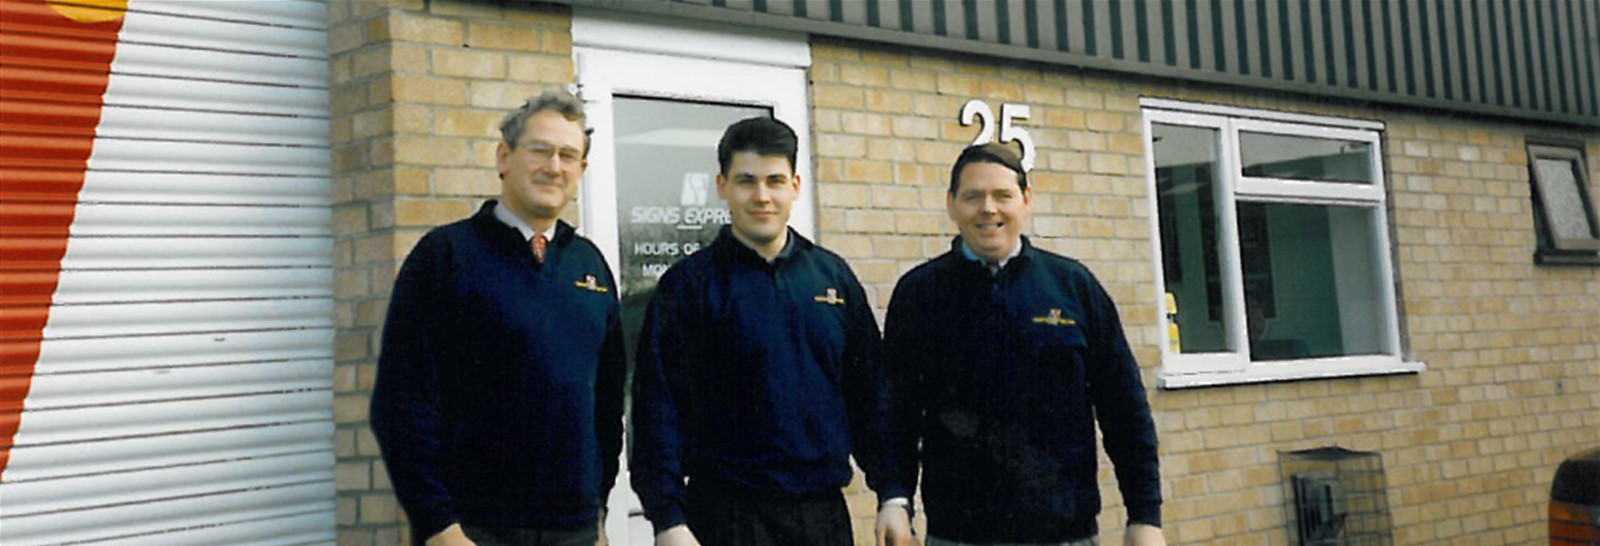 The original founders of Signs Express